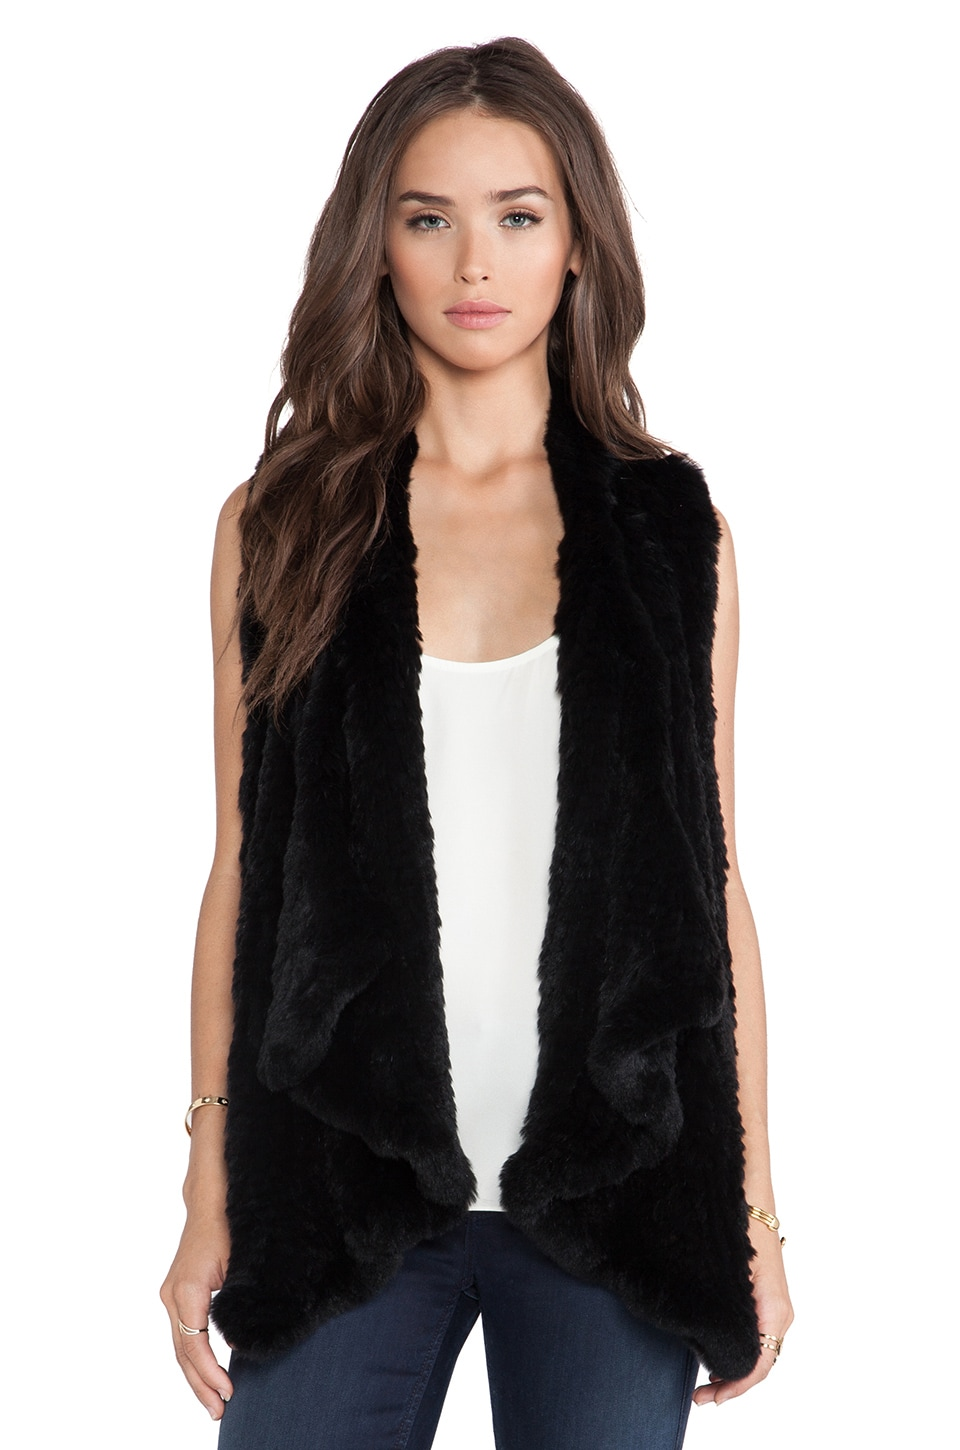 H Brand Audra Rabbit Fur Vest in Black